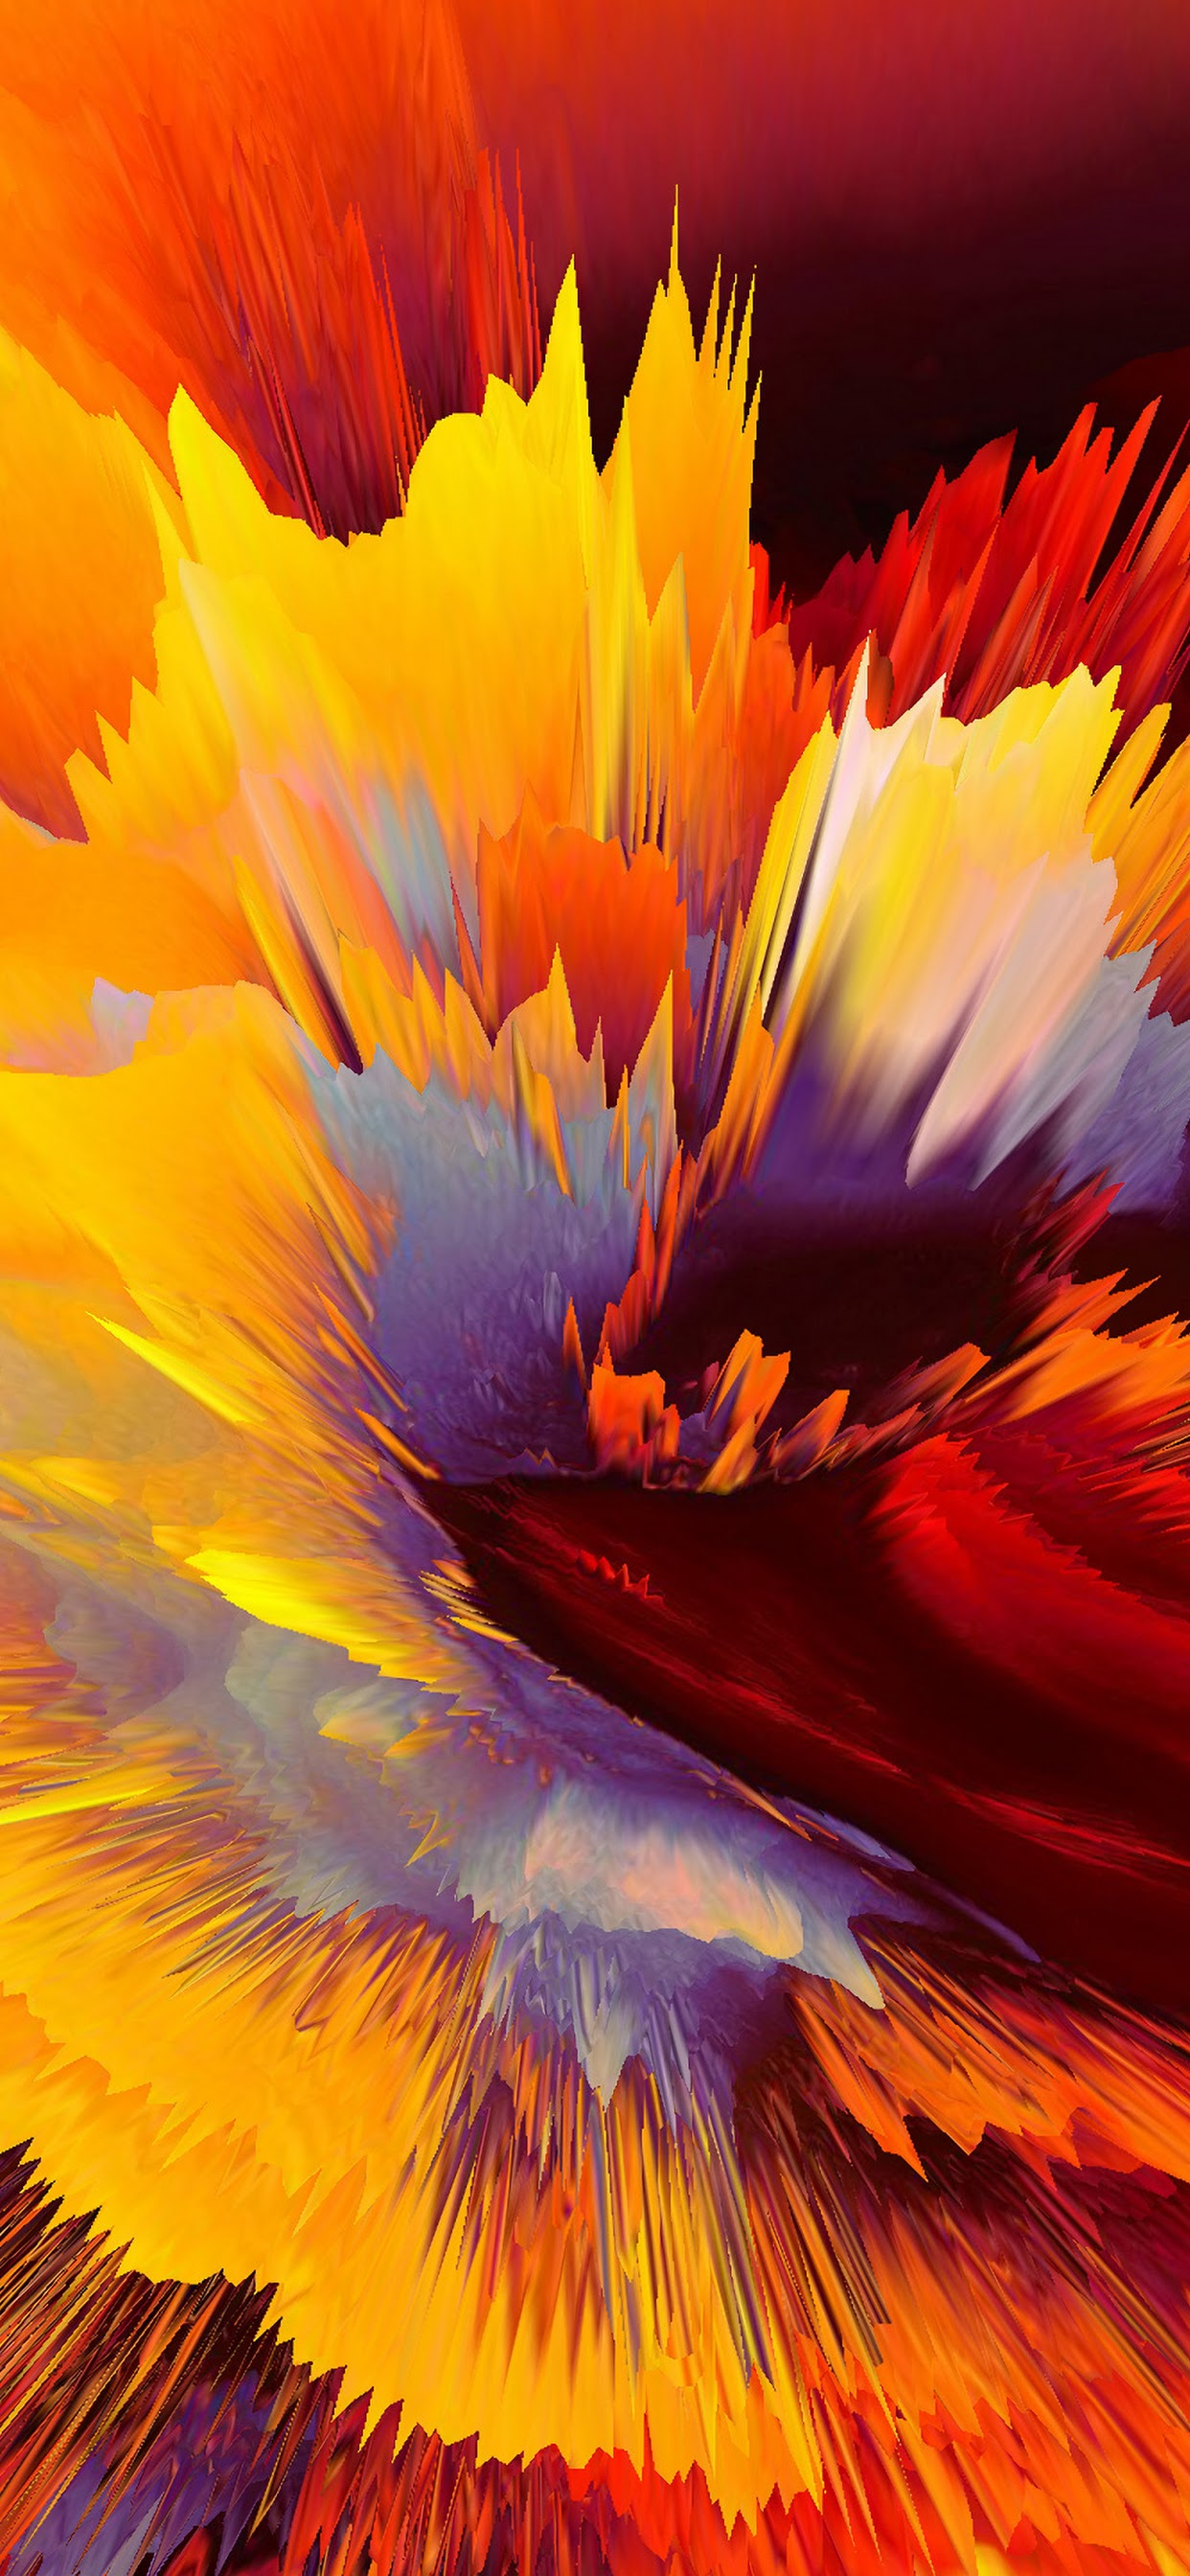 Abstract Colorful Explosion 4k Wallpaper 30